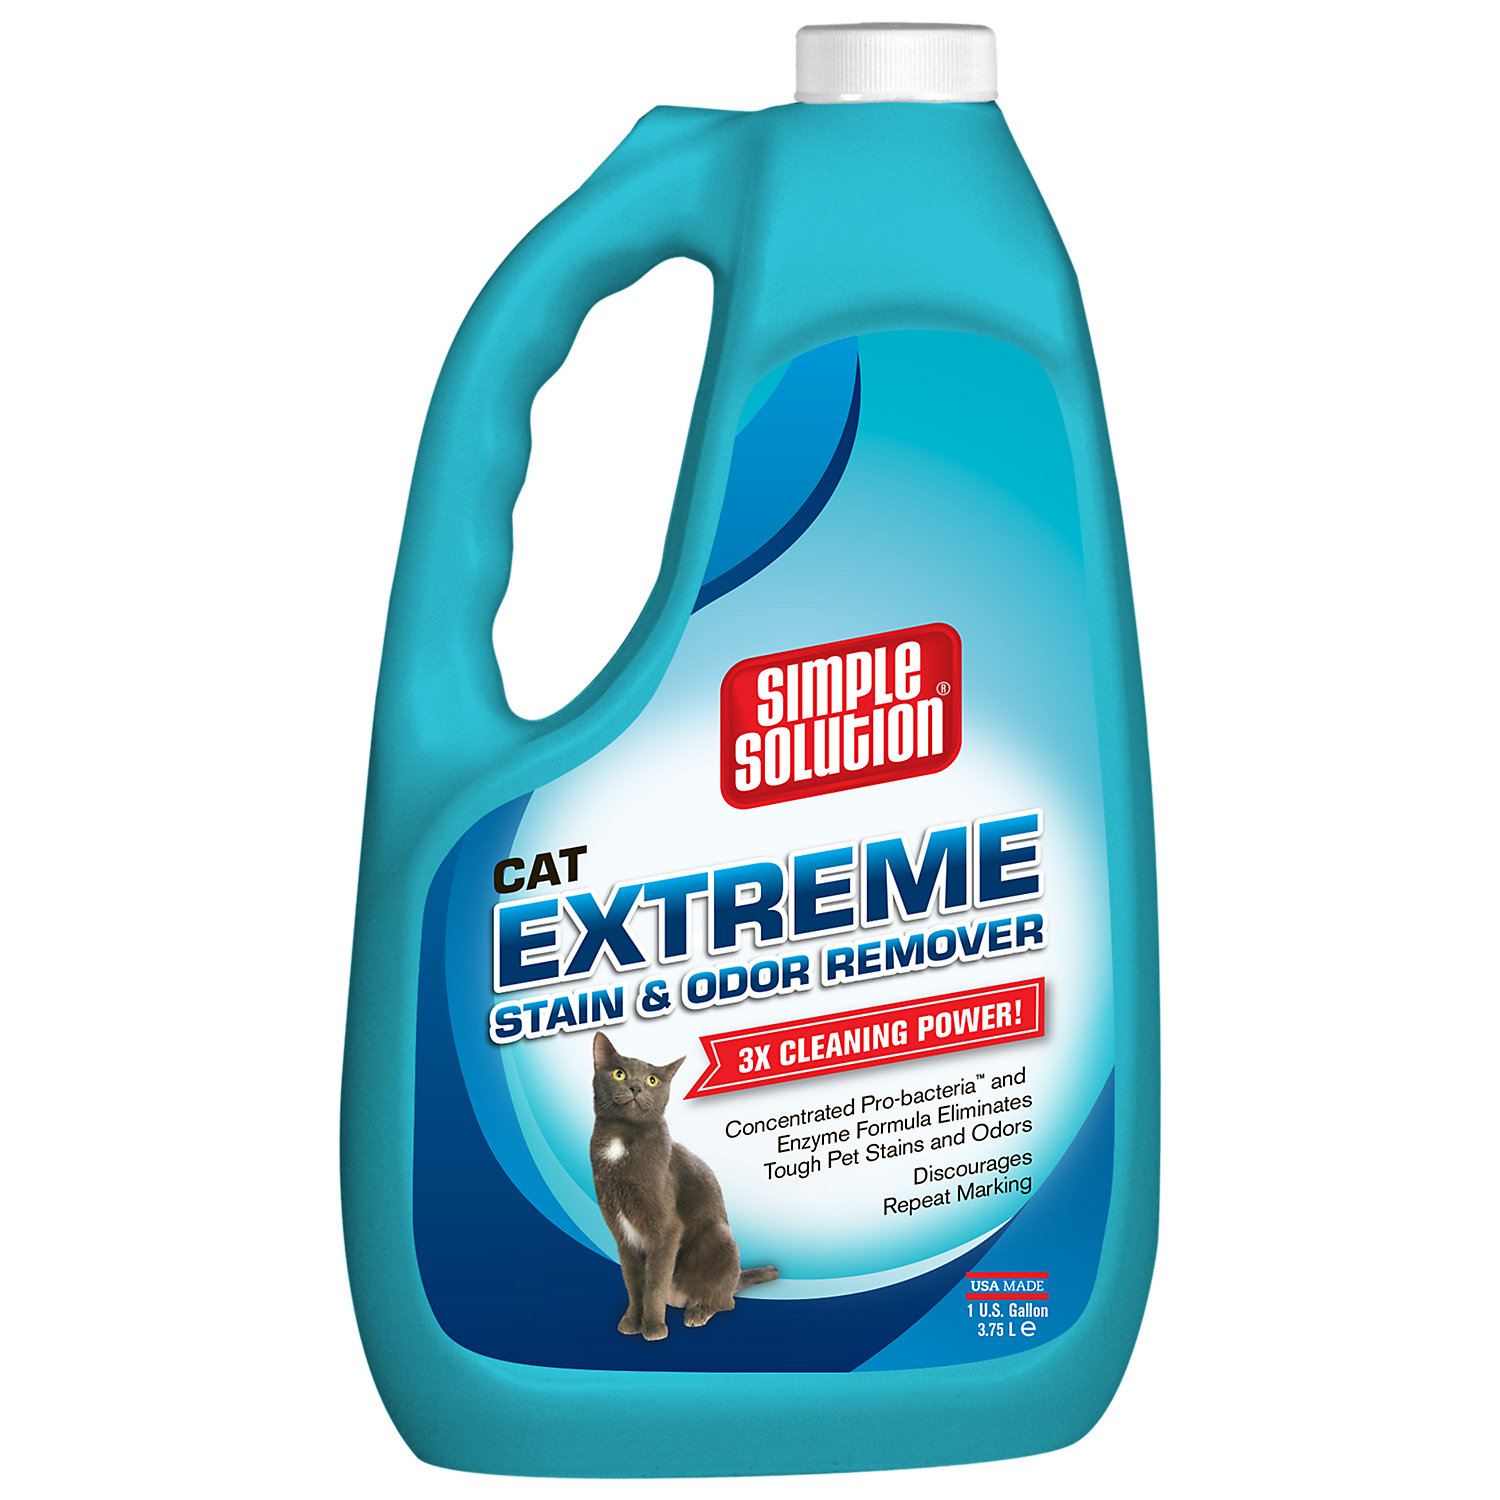 Image of Simple Solution Extreme Cat Stain & Odor Remover